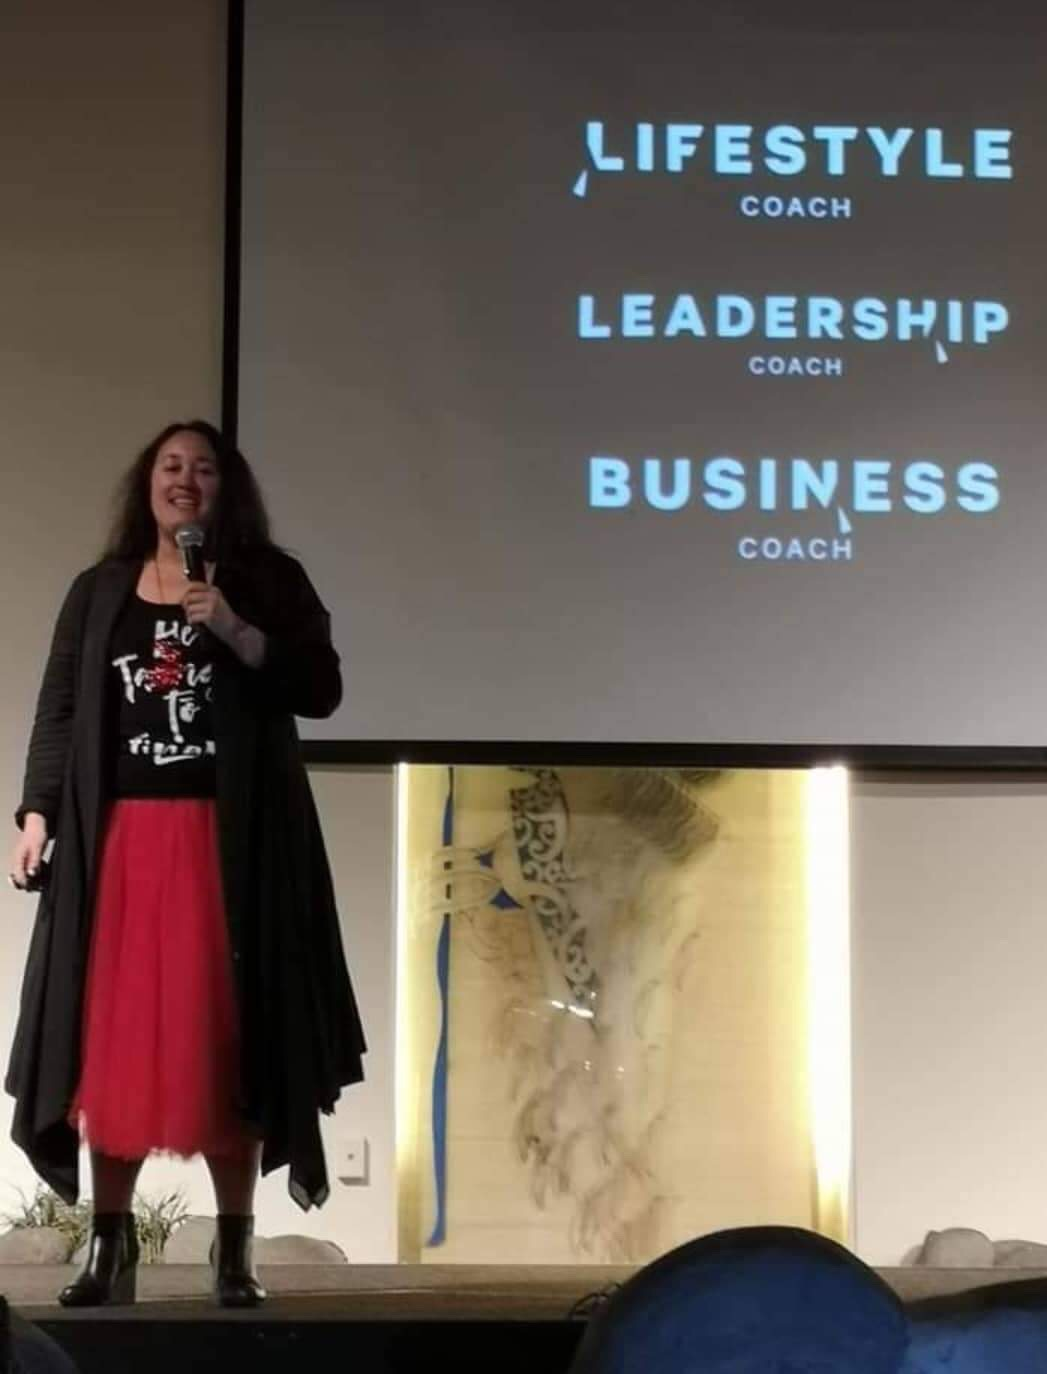 Guest speaker - DARE INSPIRE CREATEImage from the Rotorua Event. It was an honour to be a speaker and amongst amazing wahine.